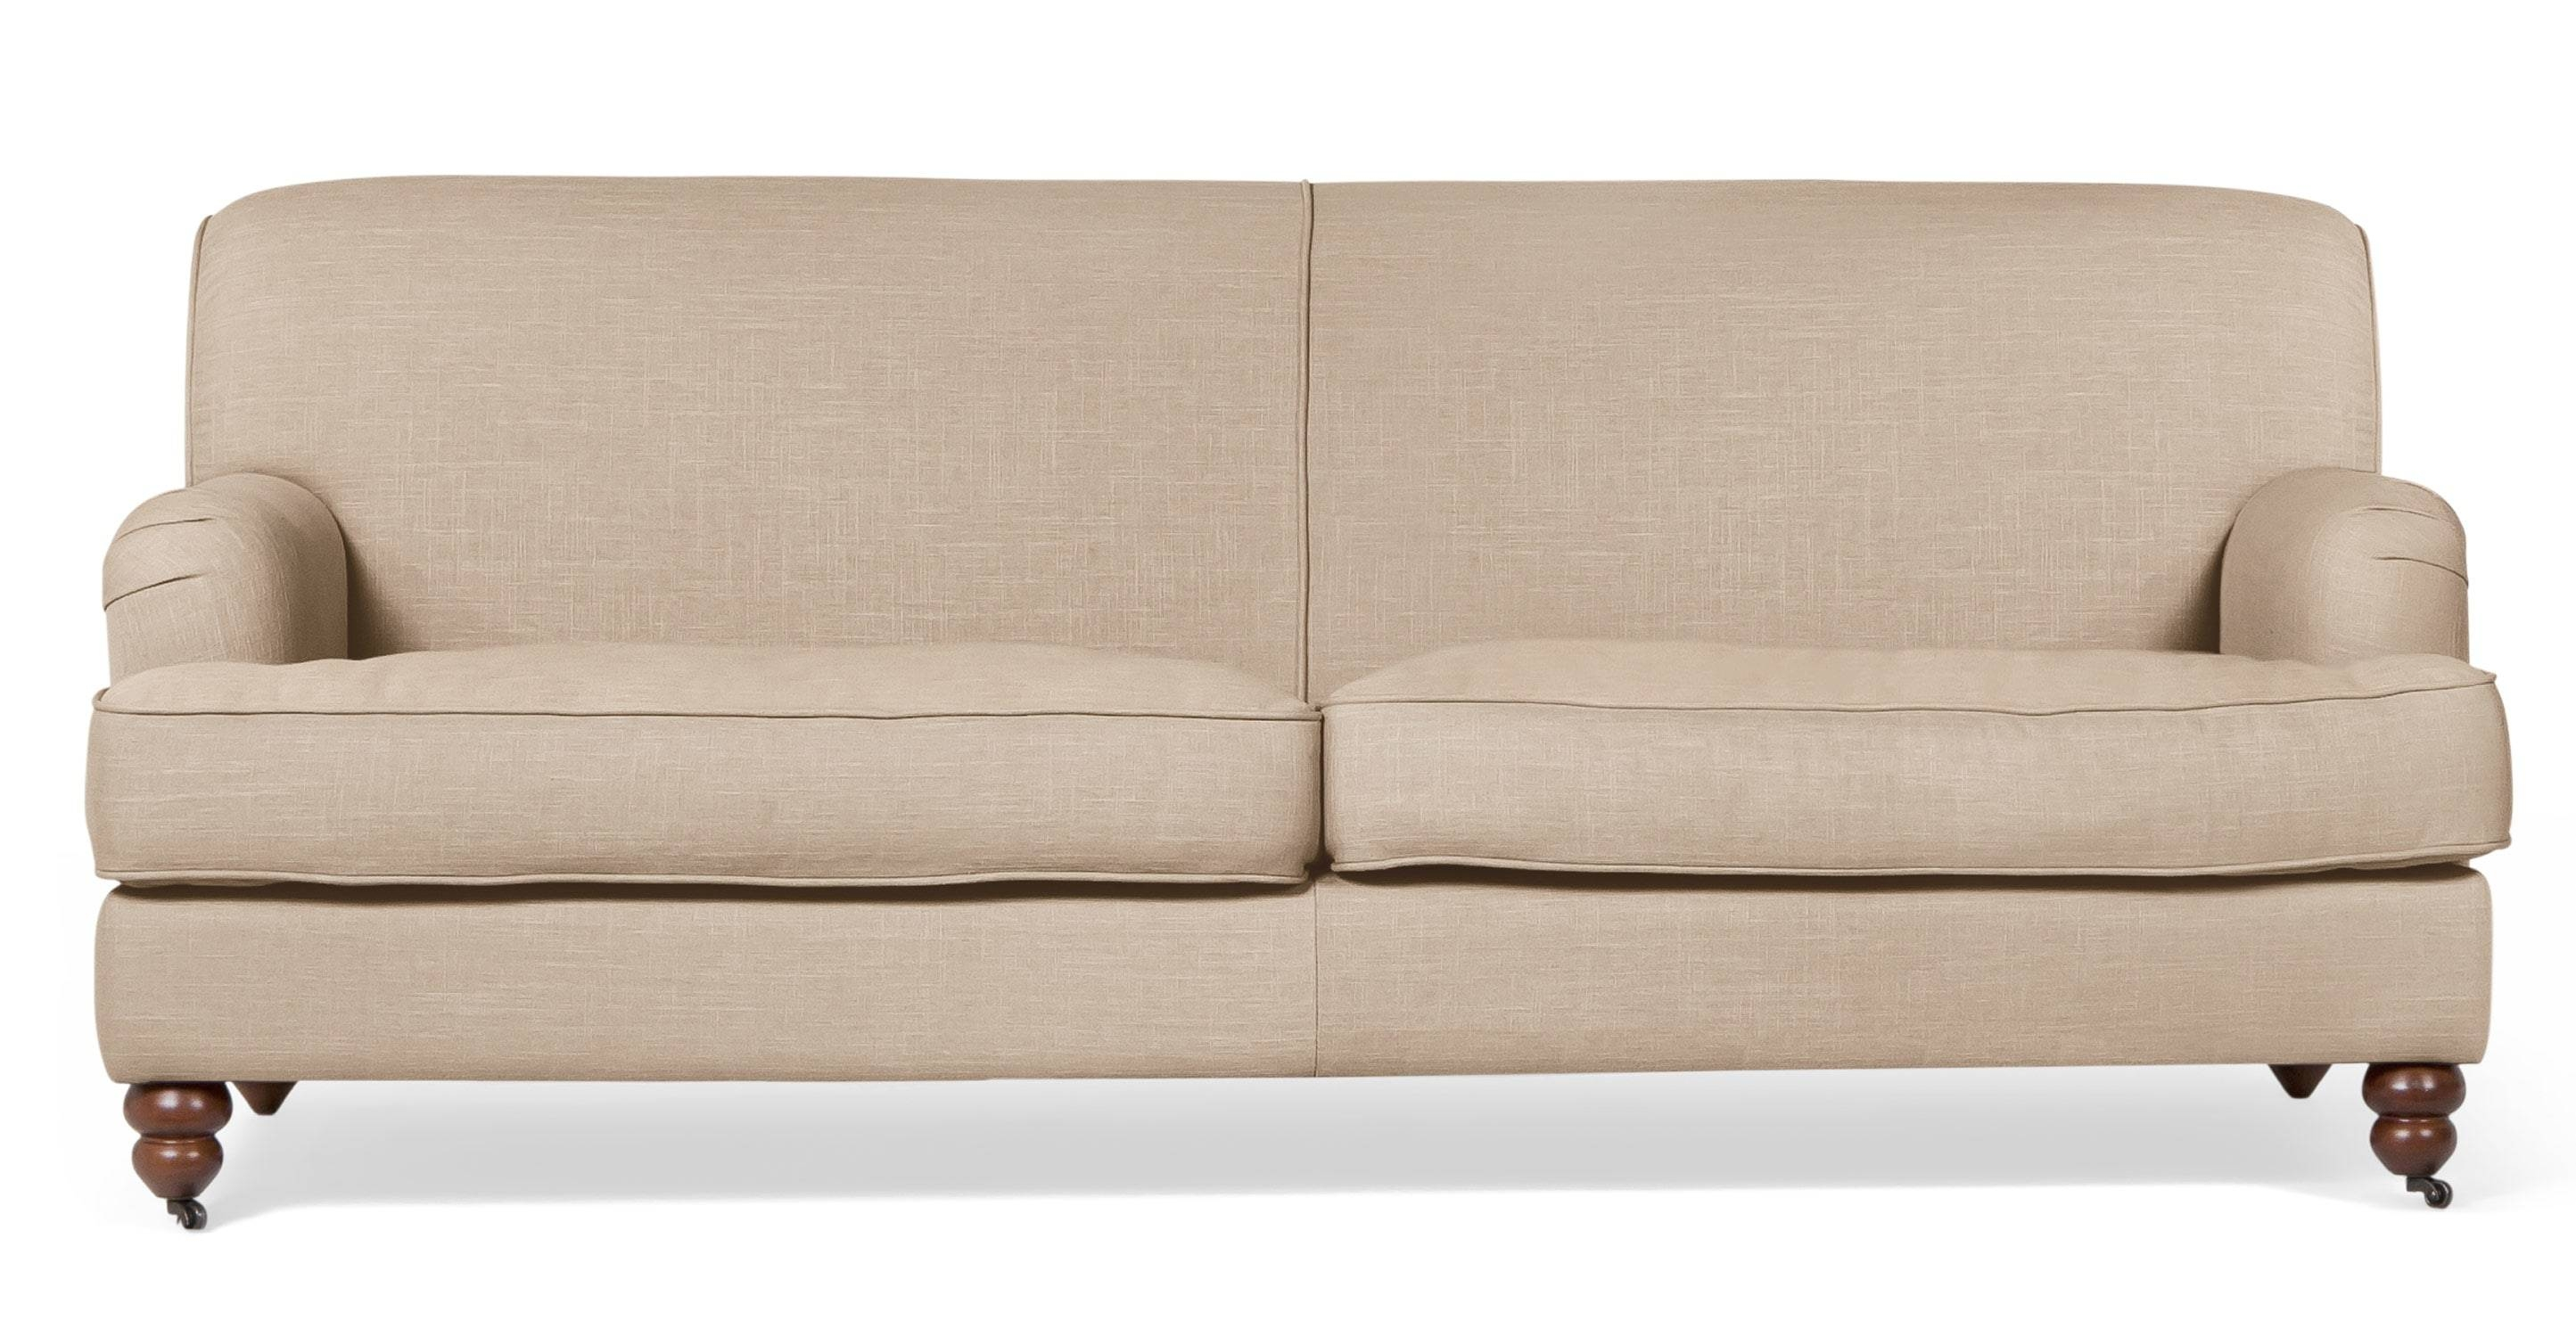 Furniture: Cozy Beige Couch Design For Classic Living Room Ideas regarding Angled Chaise Sofa (Image 9 of 30)